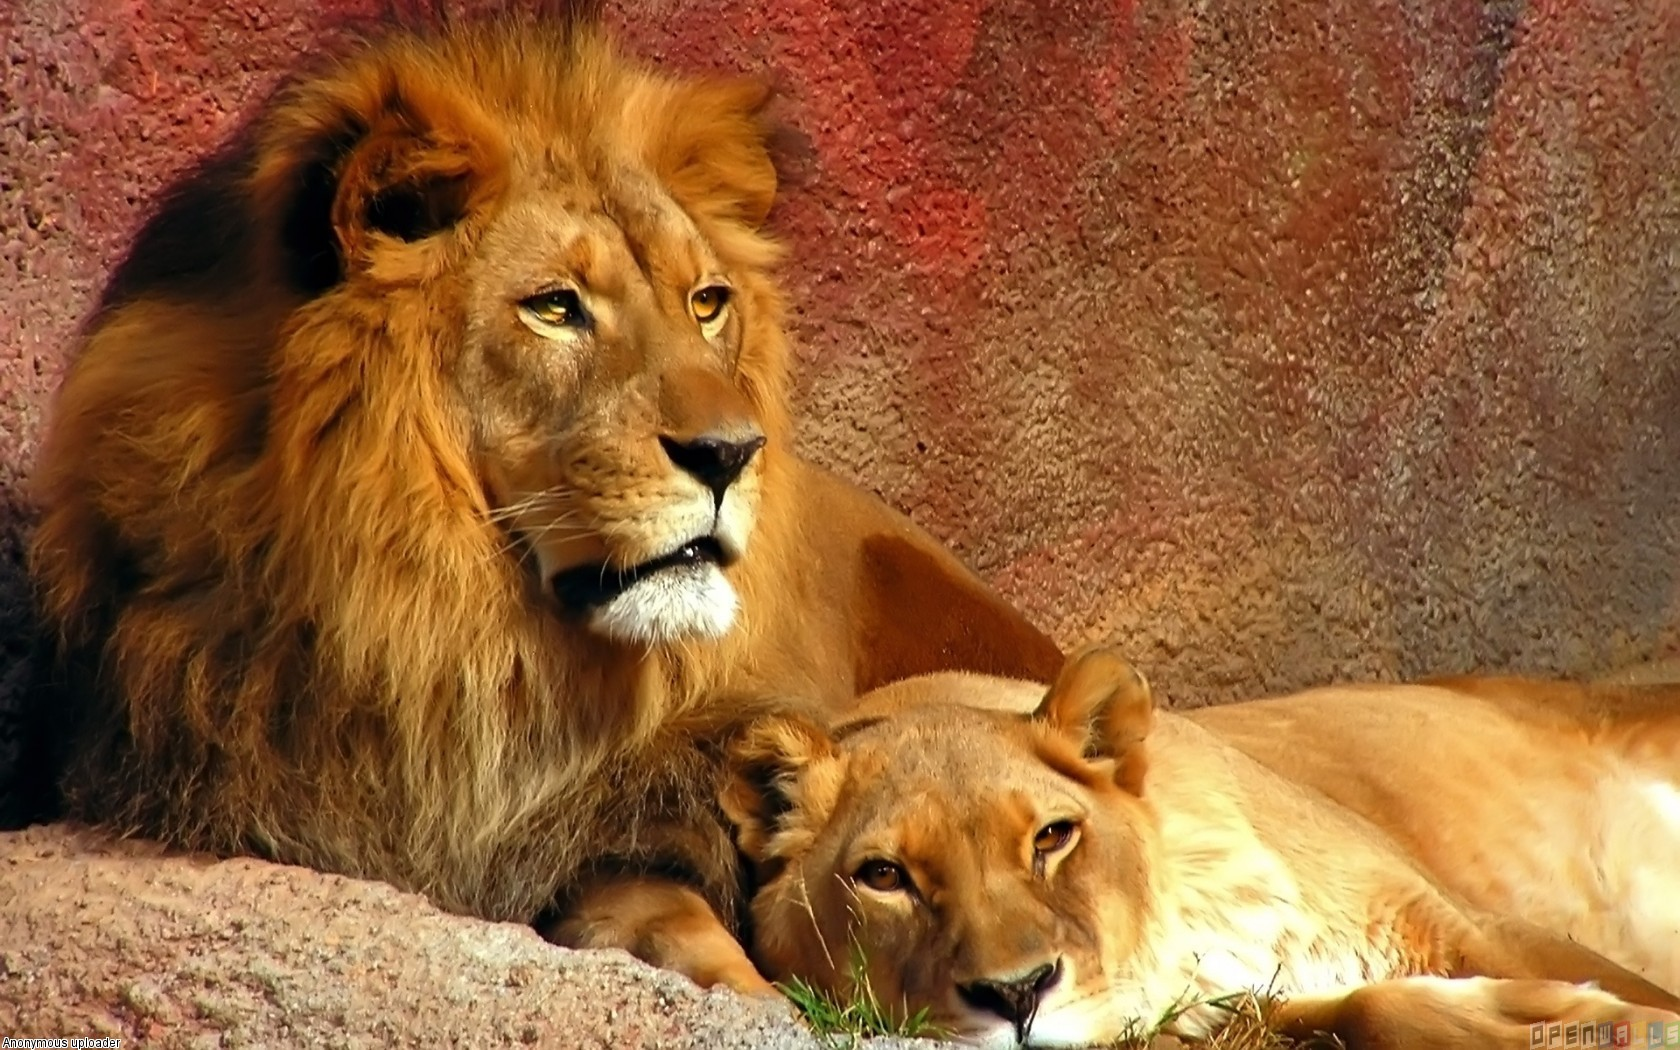 animals wild lions gorgeous wrong watching mate hard alexander scott lion accepting doubling rising goes down animal easy dying mates